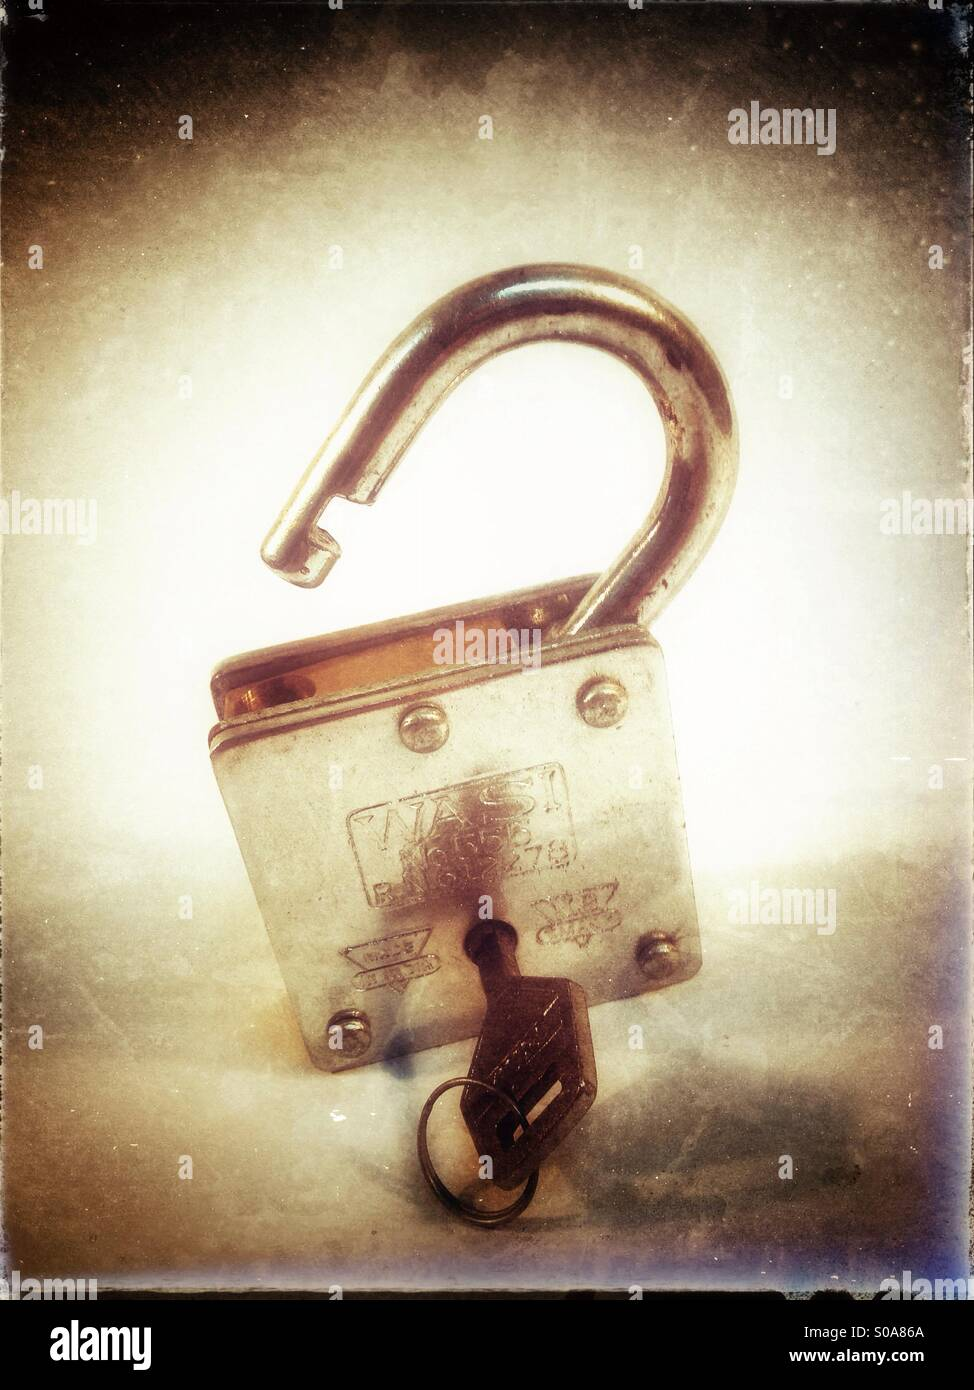 Lock and key. Lock open. Stock Photo